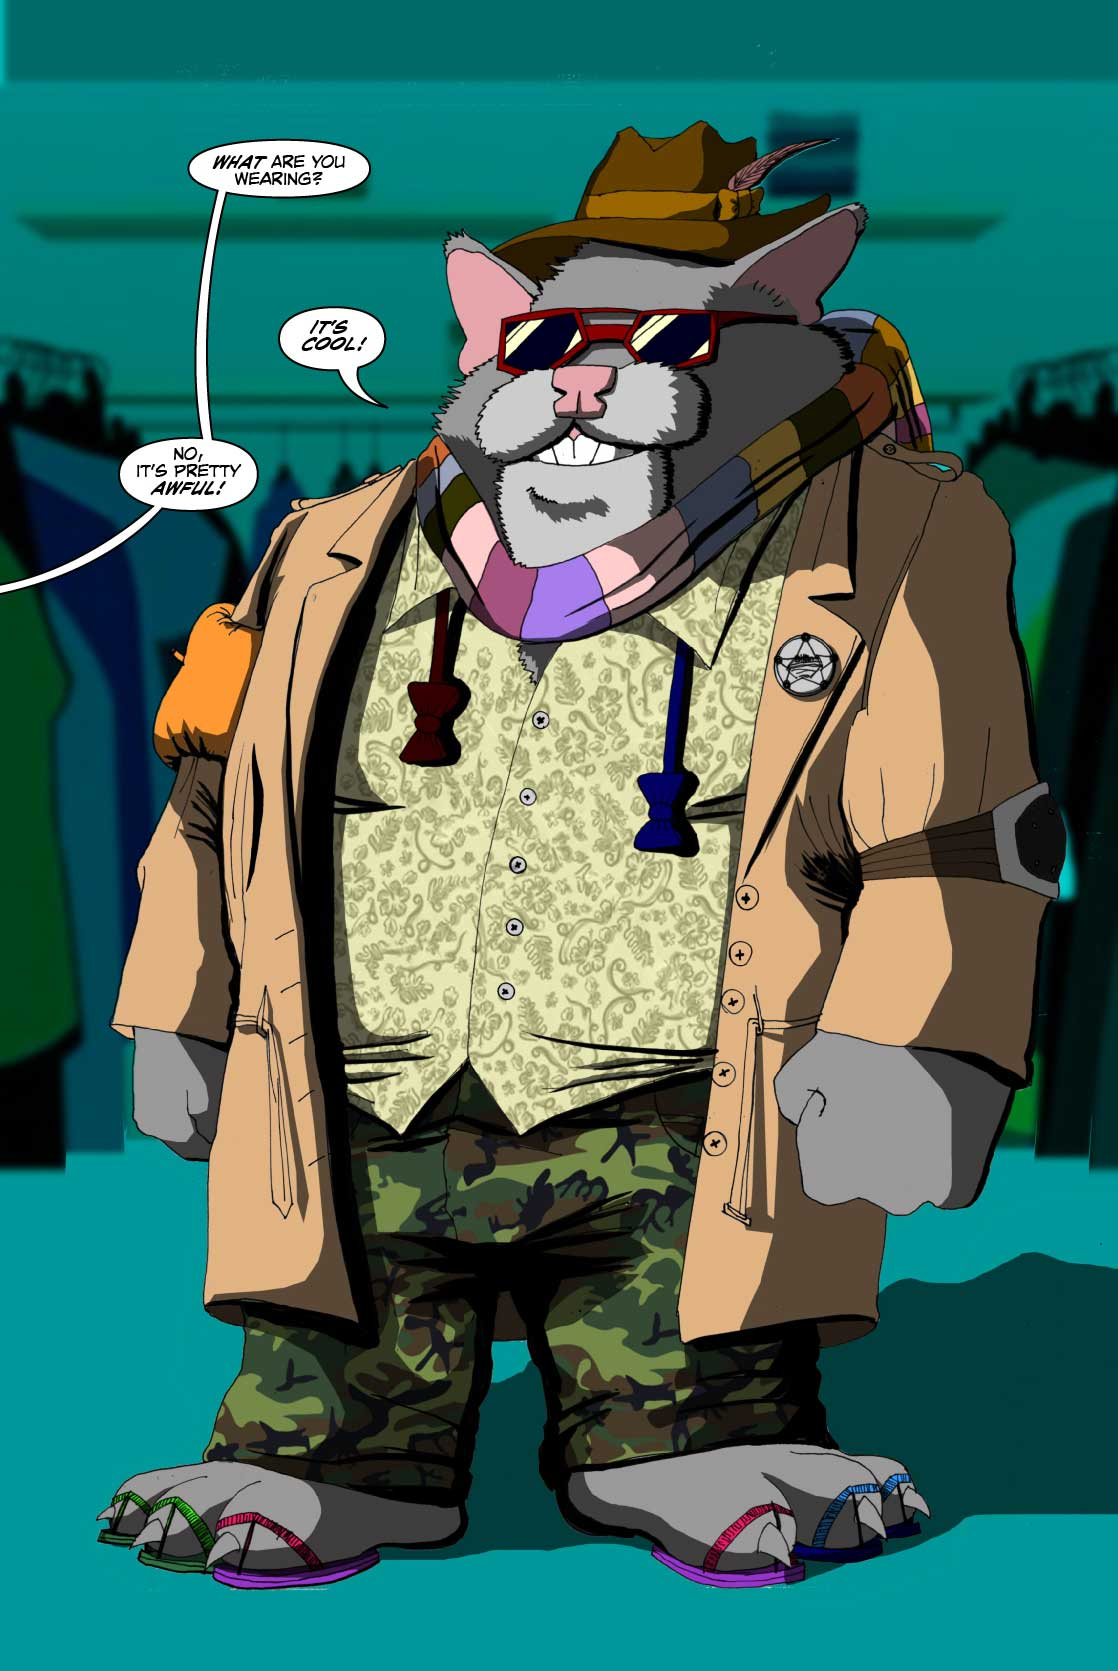 PAGE 38 Roosevelt is decked out in a horrid clash of garments. The Hat and scarf are references to the Tom Baker Doctor Who, the Bow Ties are reference to the Matt Smith Doctor Who, the glasses should be gaudy red, white and blue. The shirt is a Hawaiian print. The only things he'll continue to wear are the Camo Pants and the Trench Coat. ROOSEVELT: I all dressed!